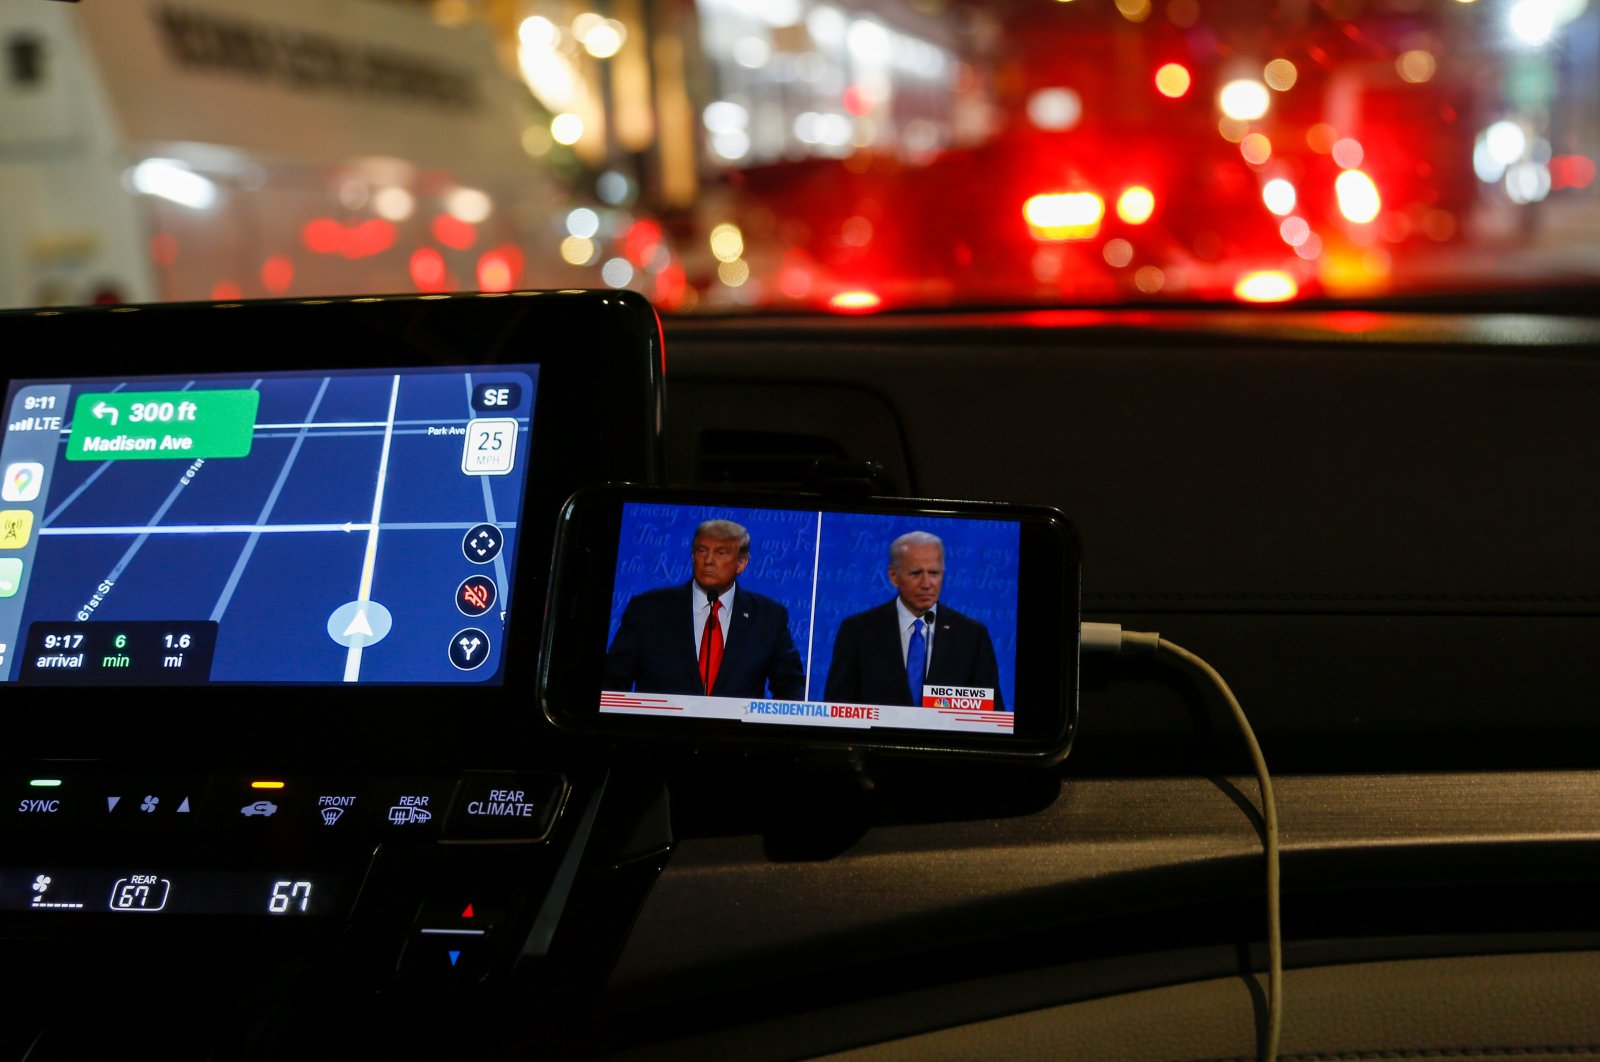 A driver watches thepresidential debate between U.S. President Donald Trump and Democratic candidateJoe Biden on a phone screen in New Jersey, the U.S., Oct. 22, 2020. (AA Photo)